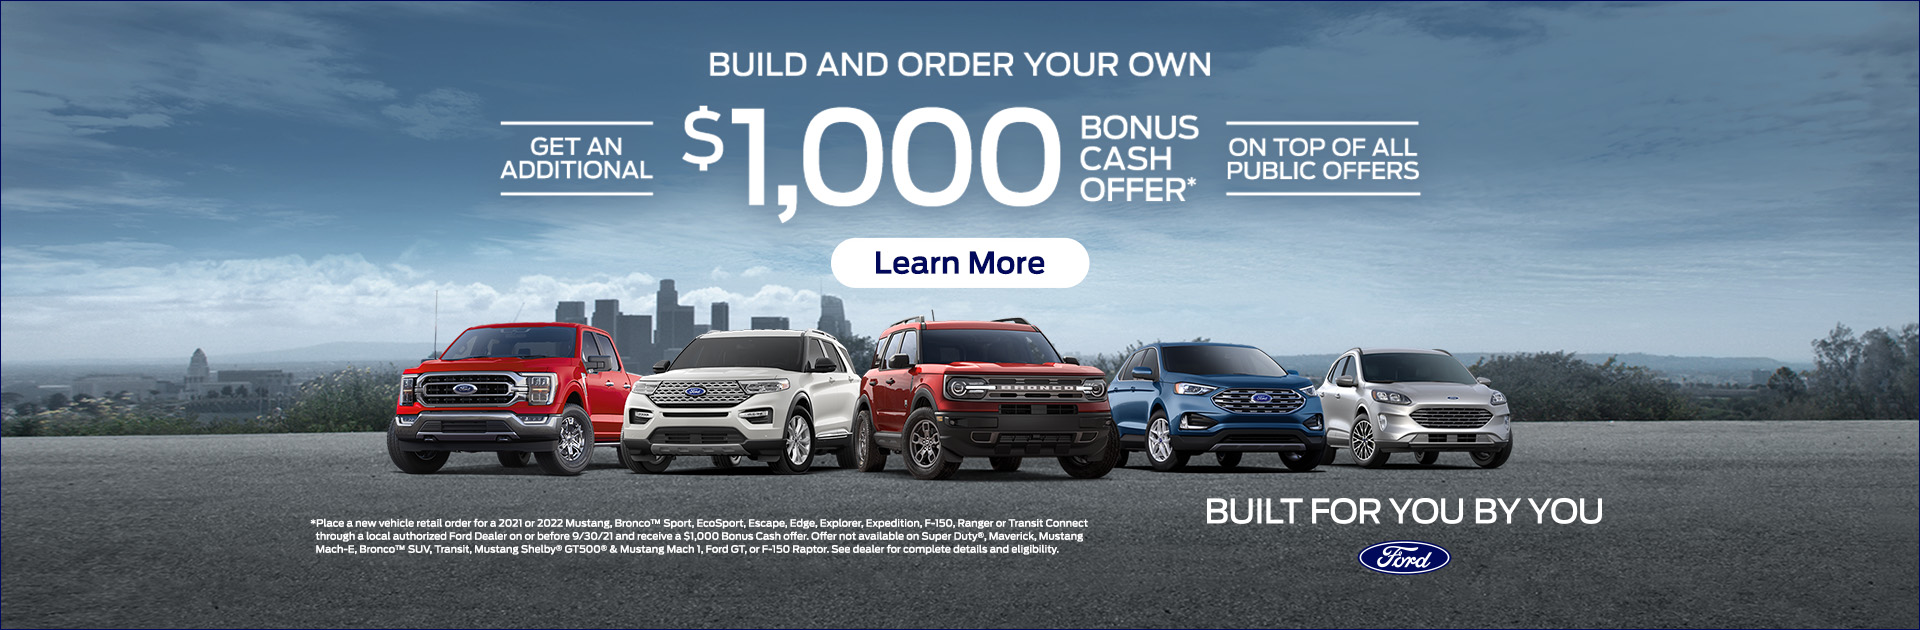 Build And Order Your Own